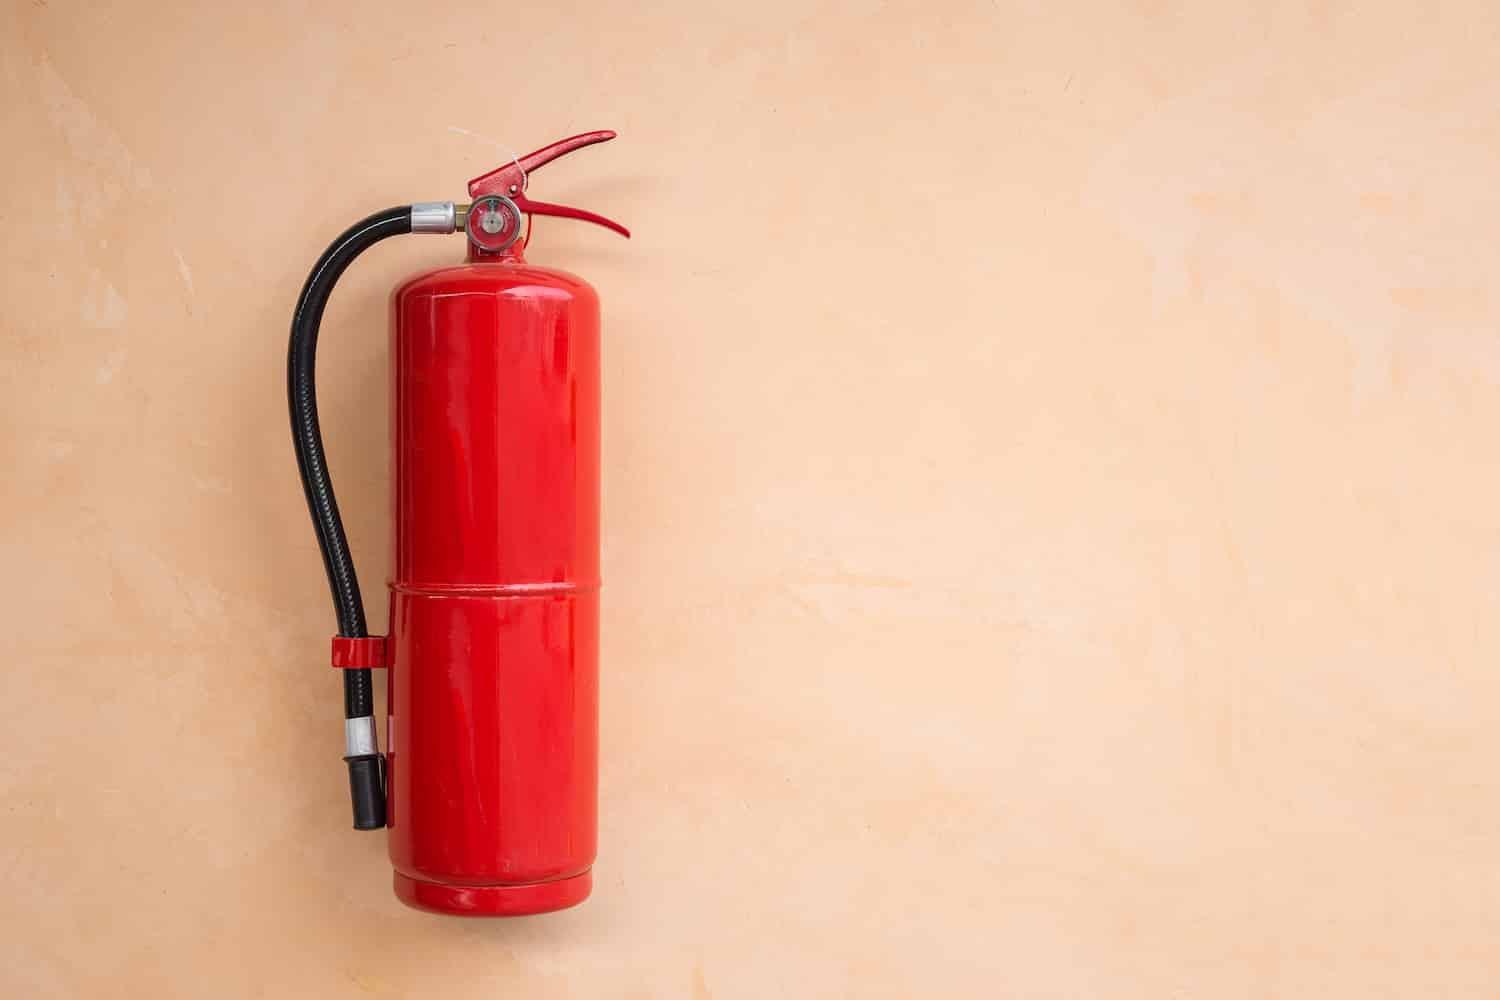 New red fire extinguisher tank on orange wall